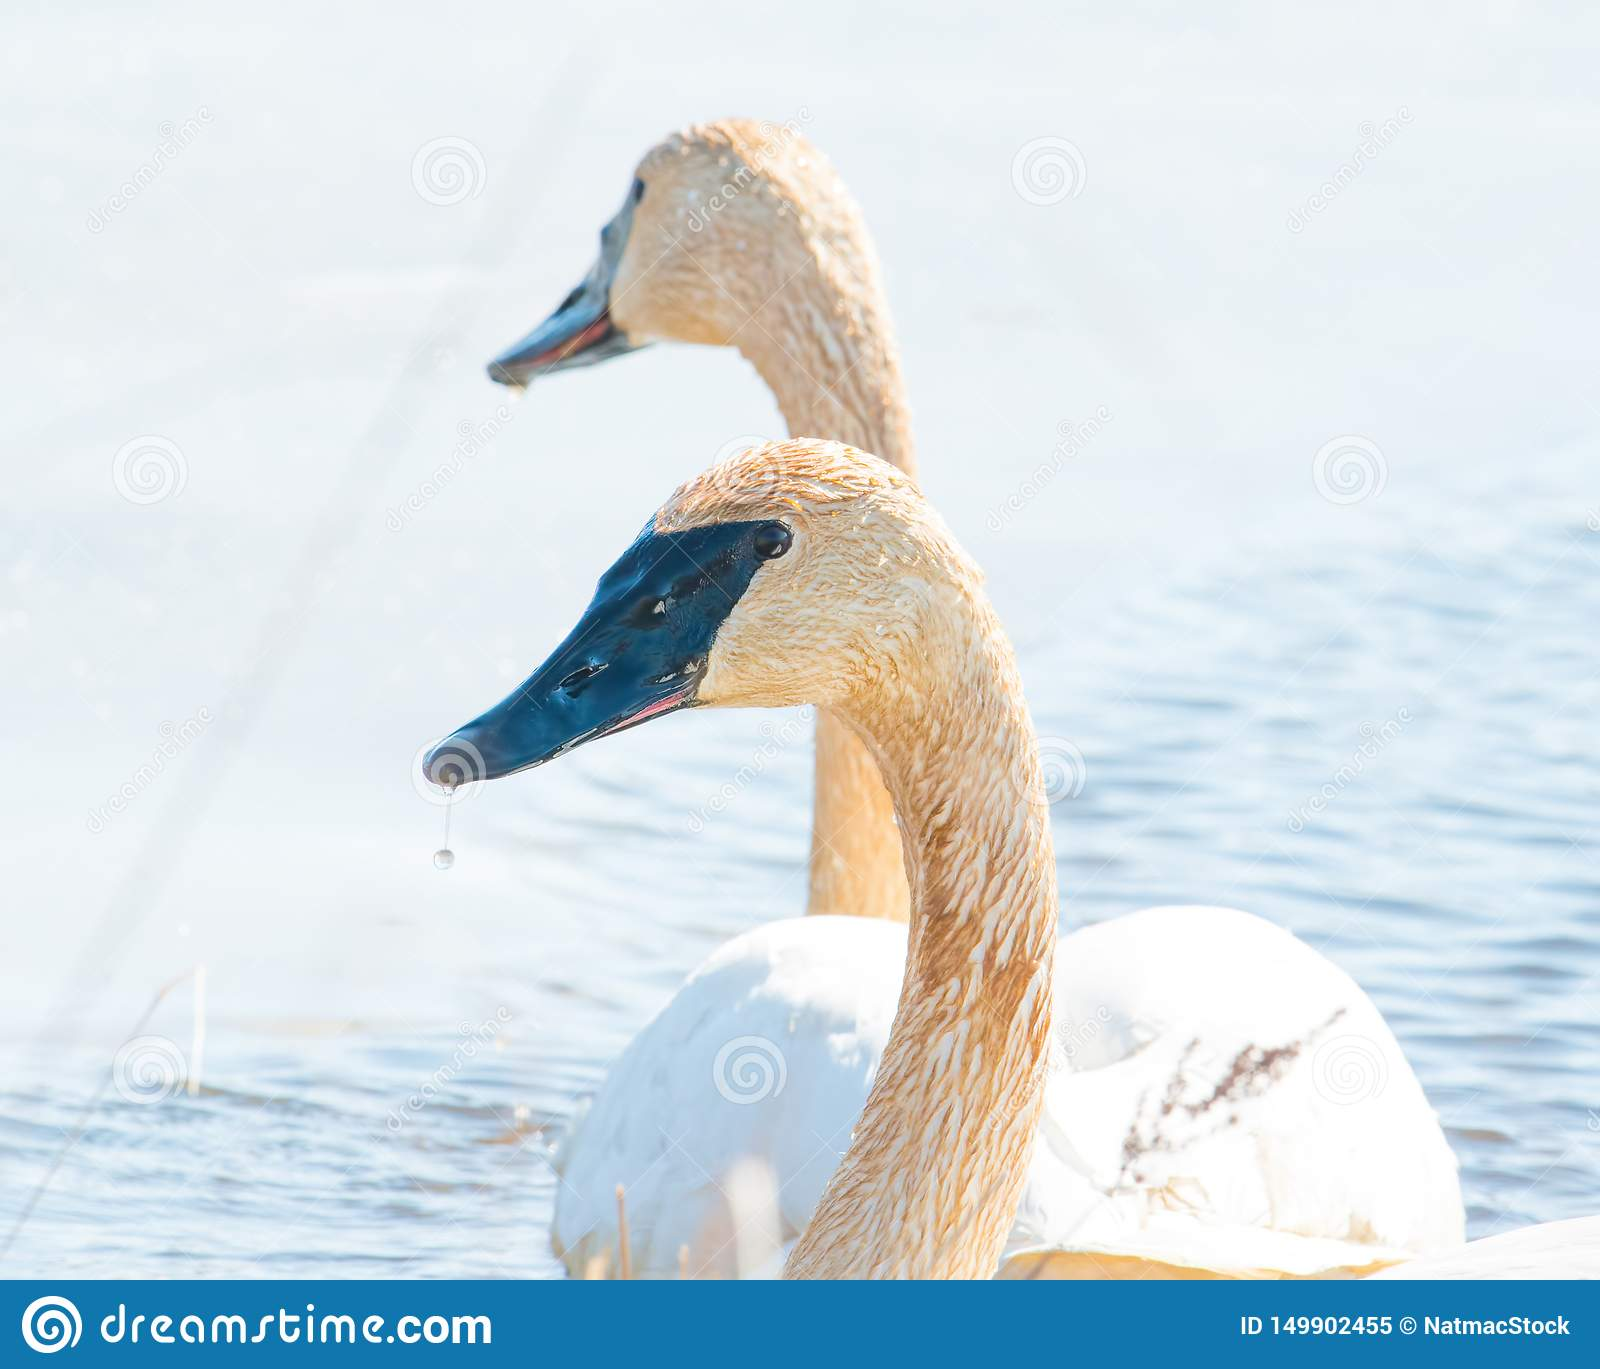 A pair of trumpeter swans with detail of beautiful plumage, eye, and beak - in early Spring during migration - taken in the Crex M